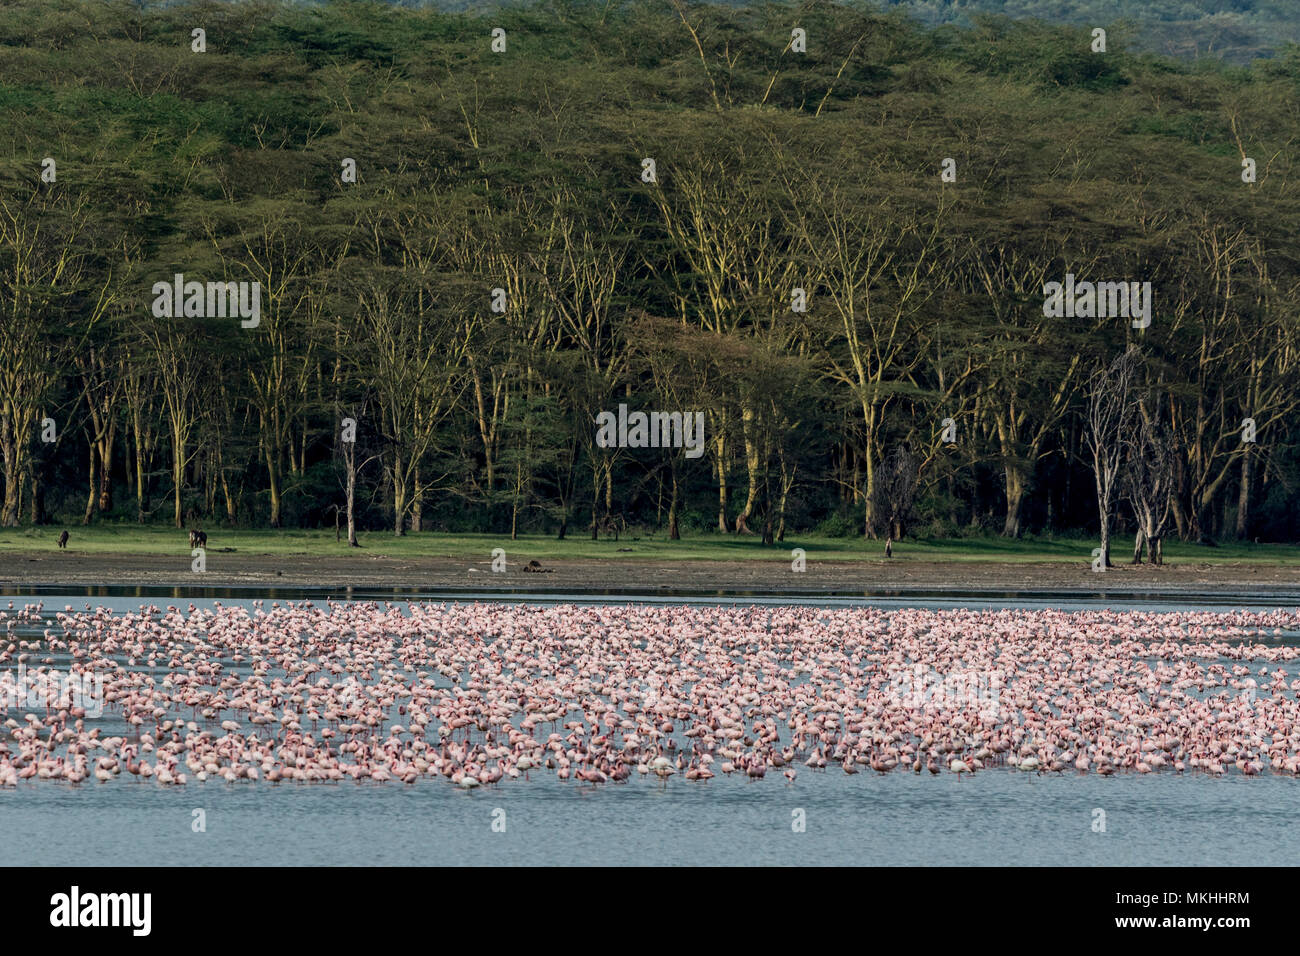 Lesser Flamingo (Phoeniconaias minor), Elmenteita Lake, Soysambu Conservation Area, Kenya - Stock Image